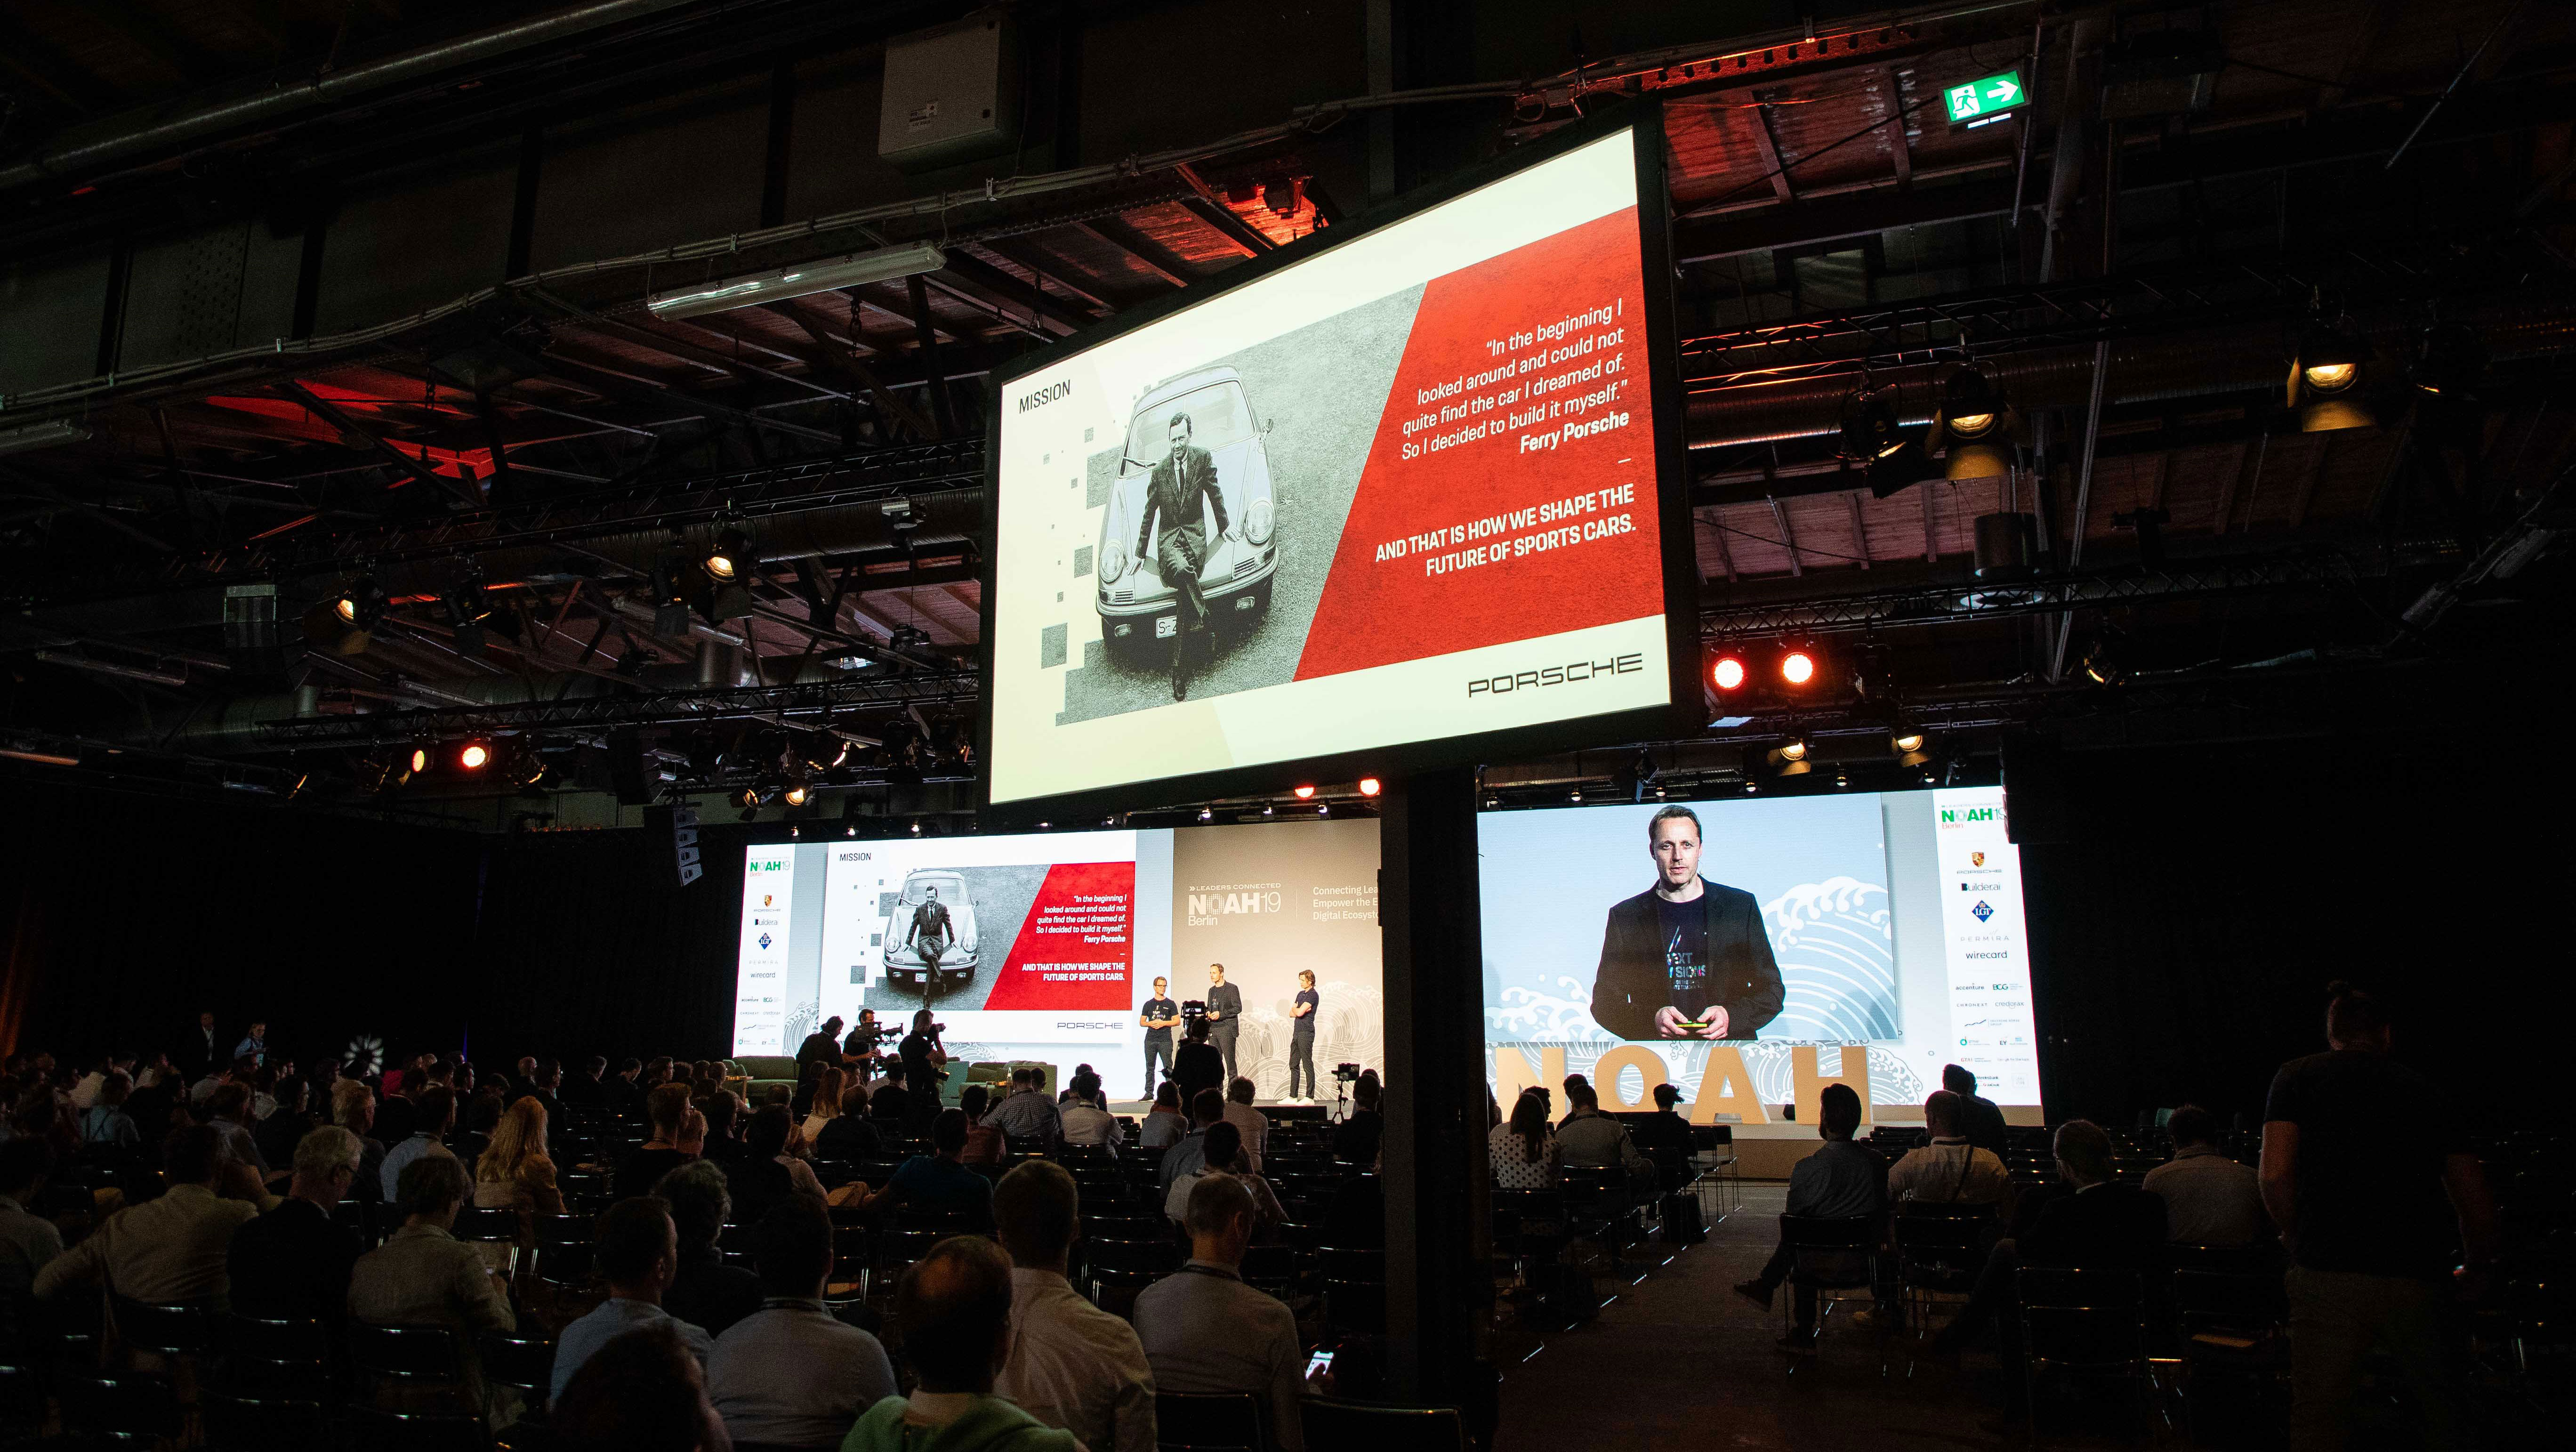 Porsche as the main strategic partner at the NOAH Conference Berlin 2019